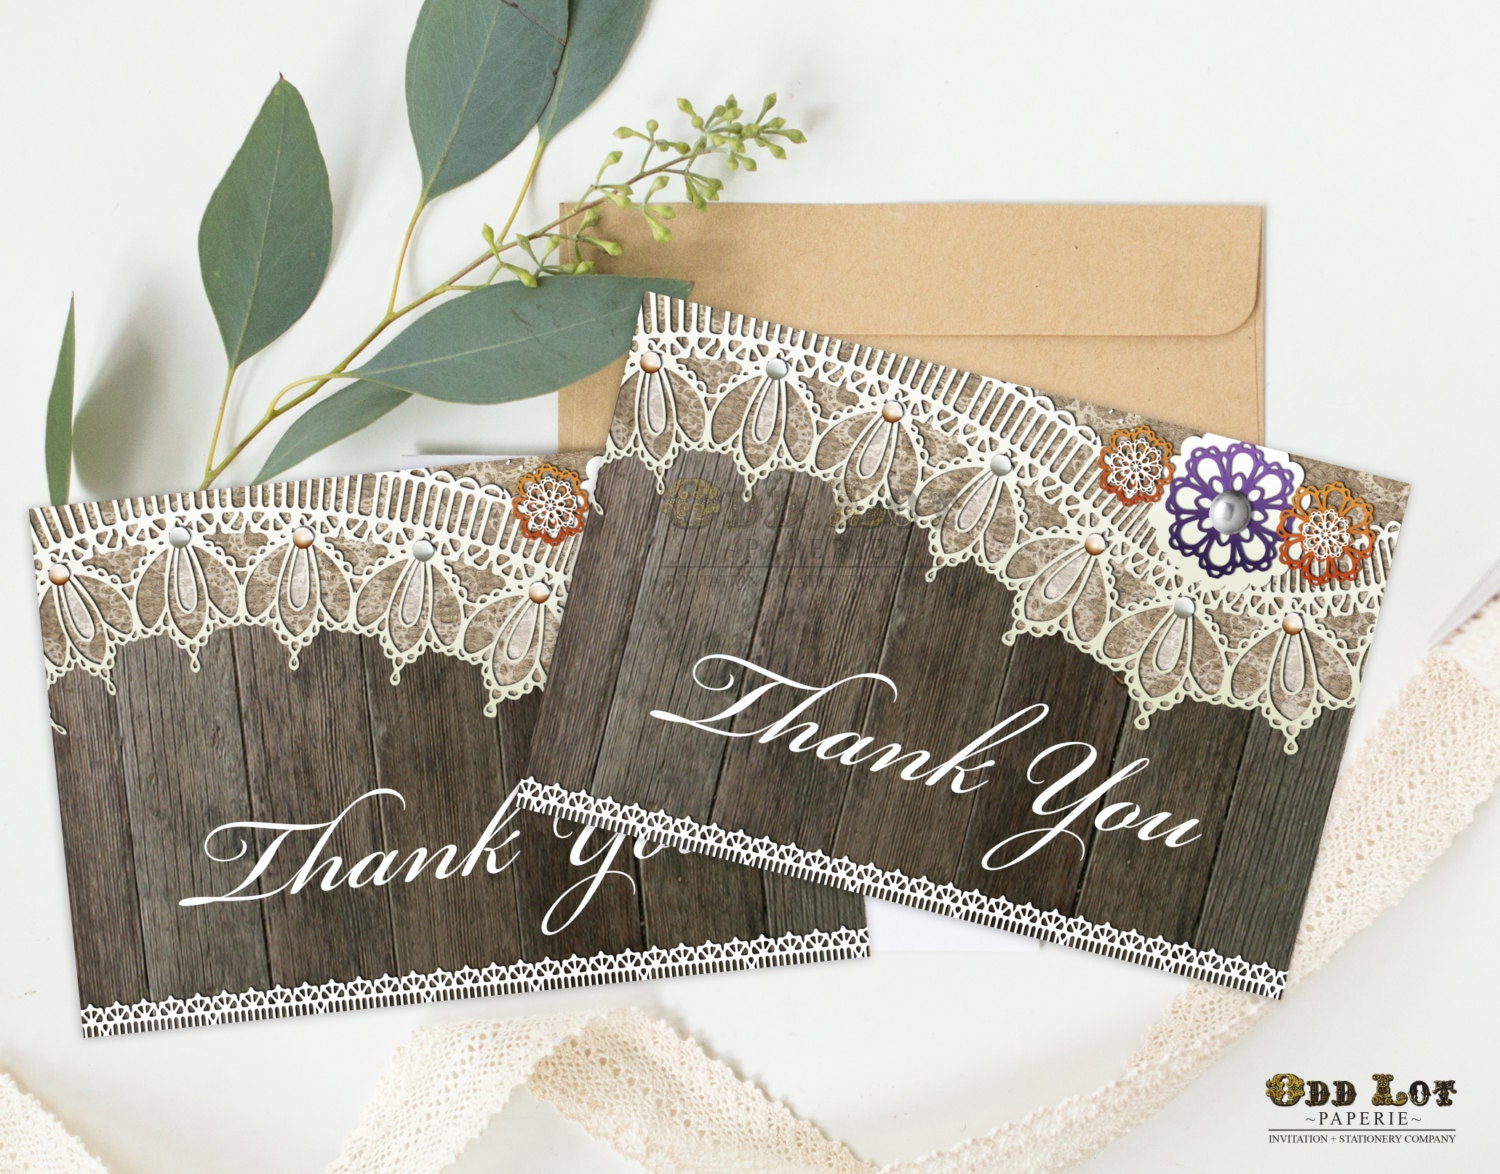 Thank You Card Printable Greeting Folded Rustic Lace In Fall Colors With Wood Plank Background